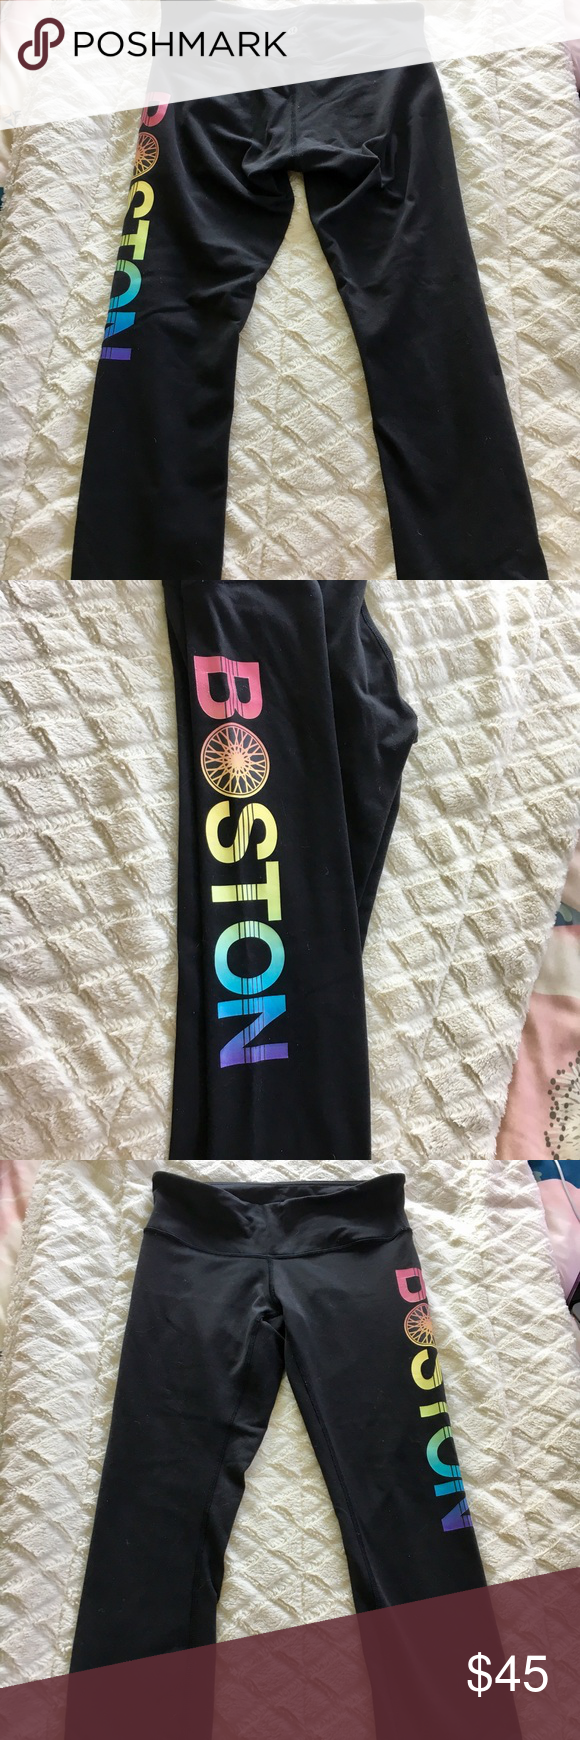 1537627e36 Lululemon SoulCycle Boston' wunder under crop Gently used leggings from  SoulCycle in great condition! 'Boston' wheel logo runs down the side of one  leg ...